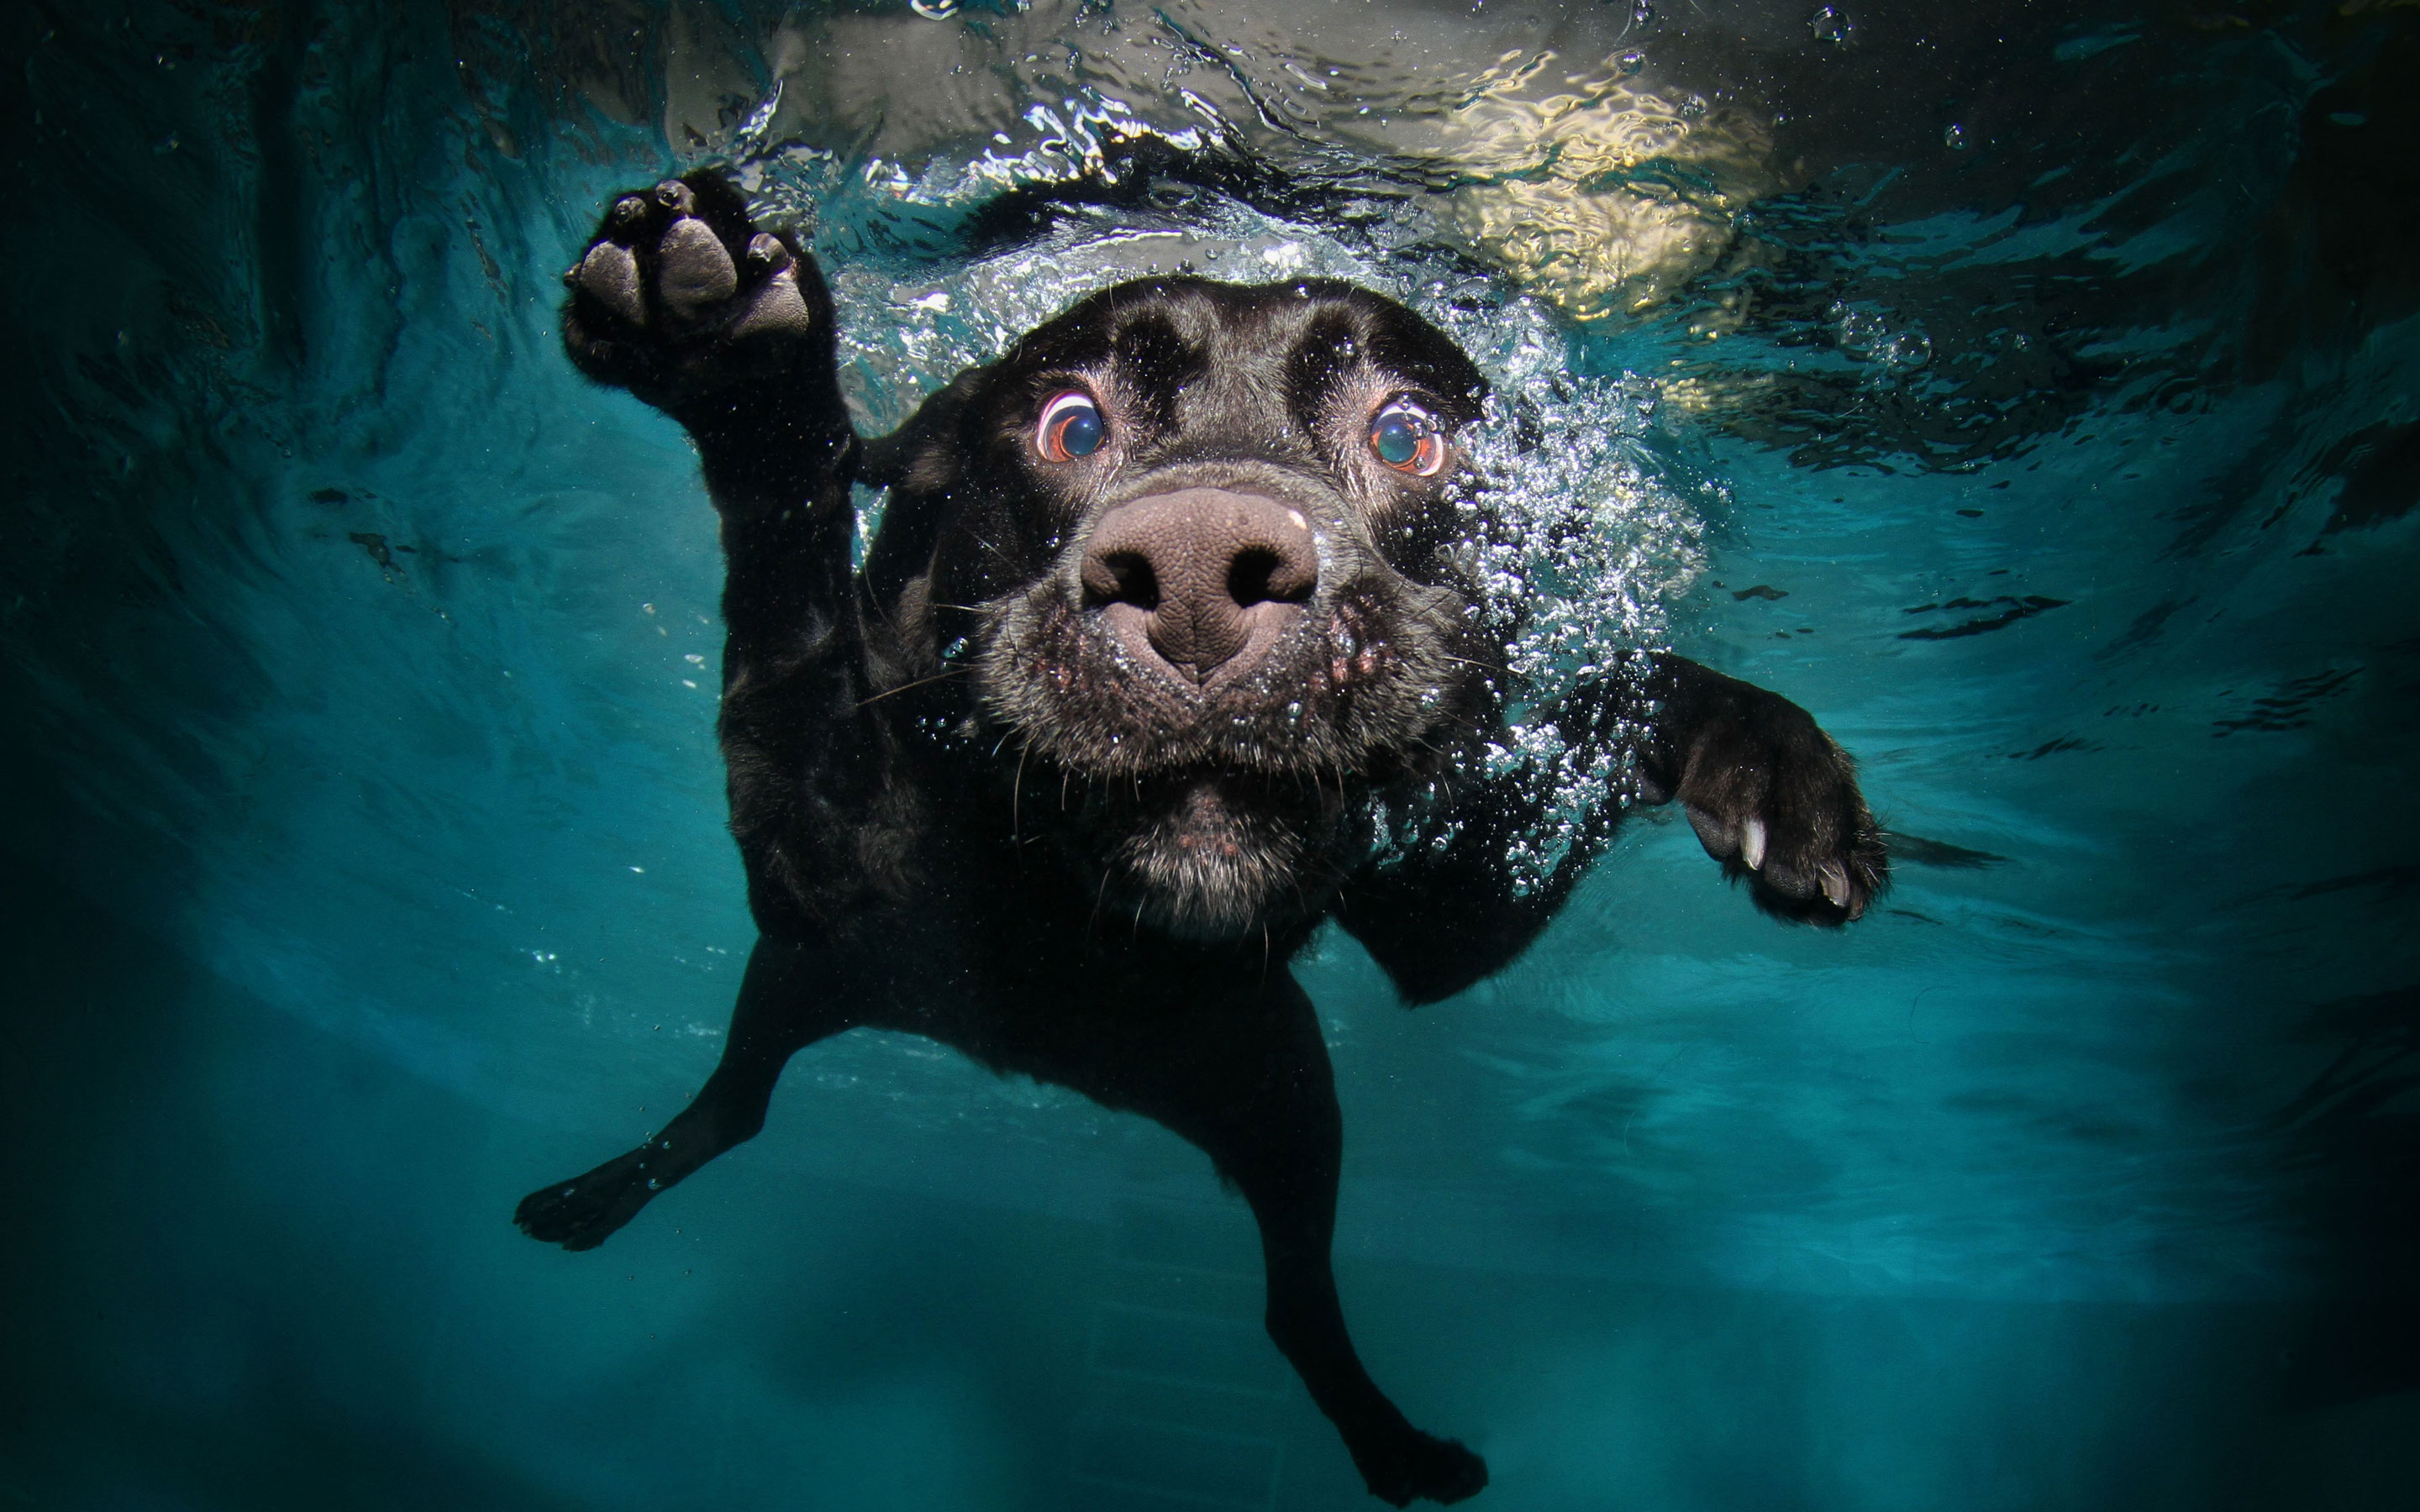 Amazing Underwater Dog HD Wallpaper 2880x1800